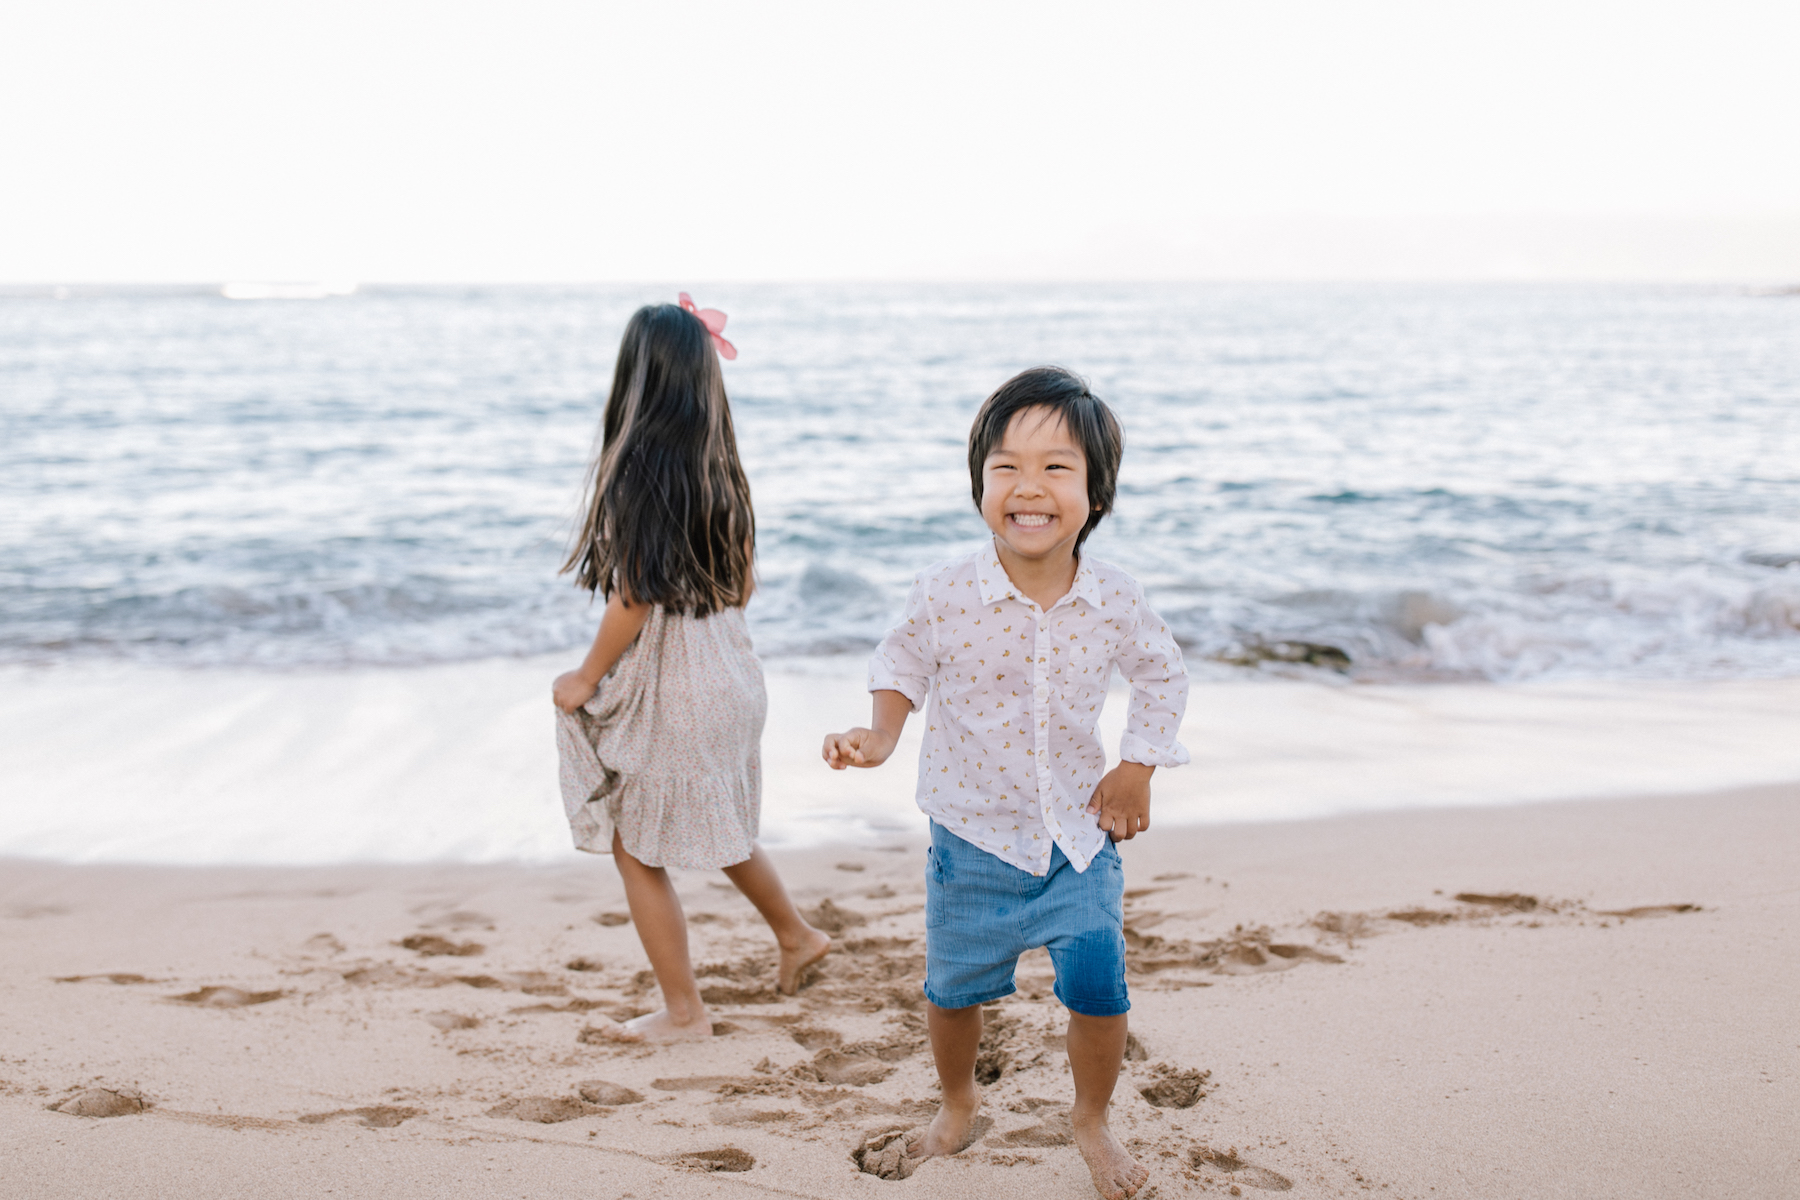 small children, a brother and sister having fun on the beach in Maui, Hawaii